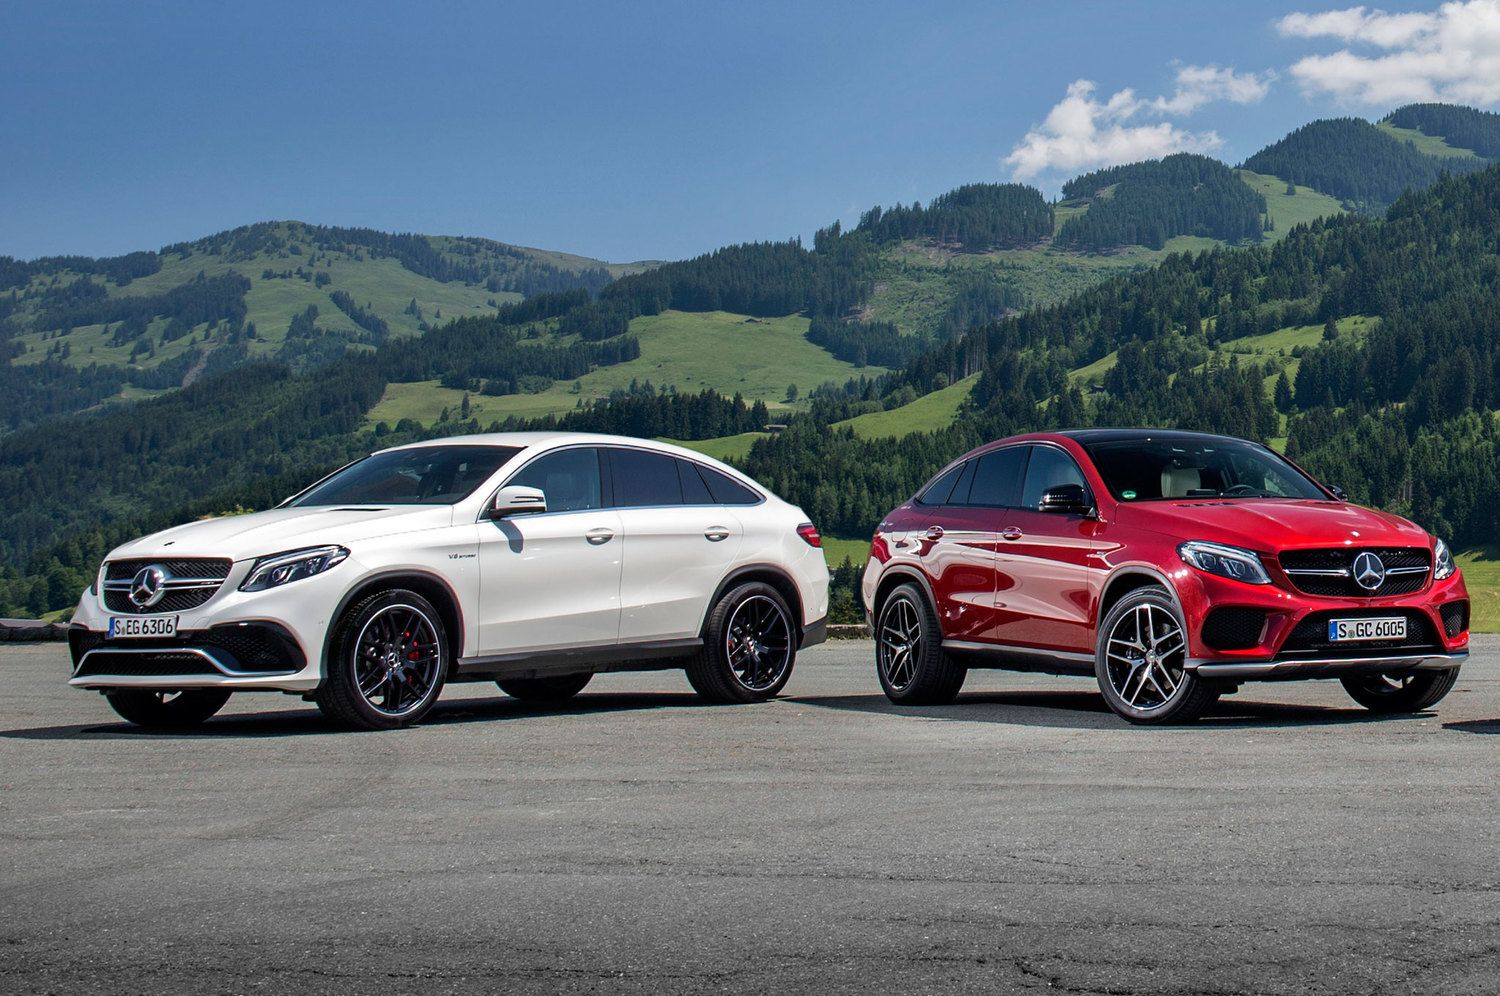 Lovely Buy Or Lease A New Mercedes Benz GLE Coupe With Car Leasing Concierge And  Save!